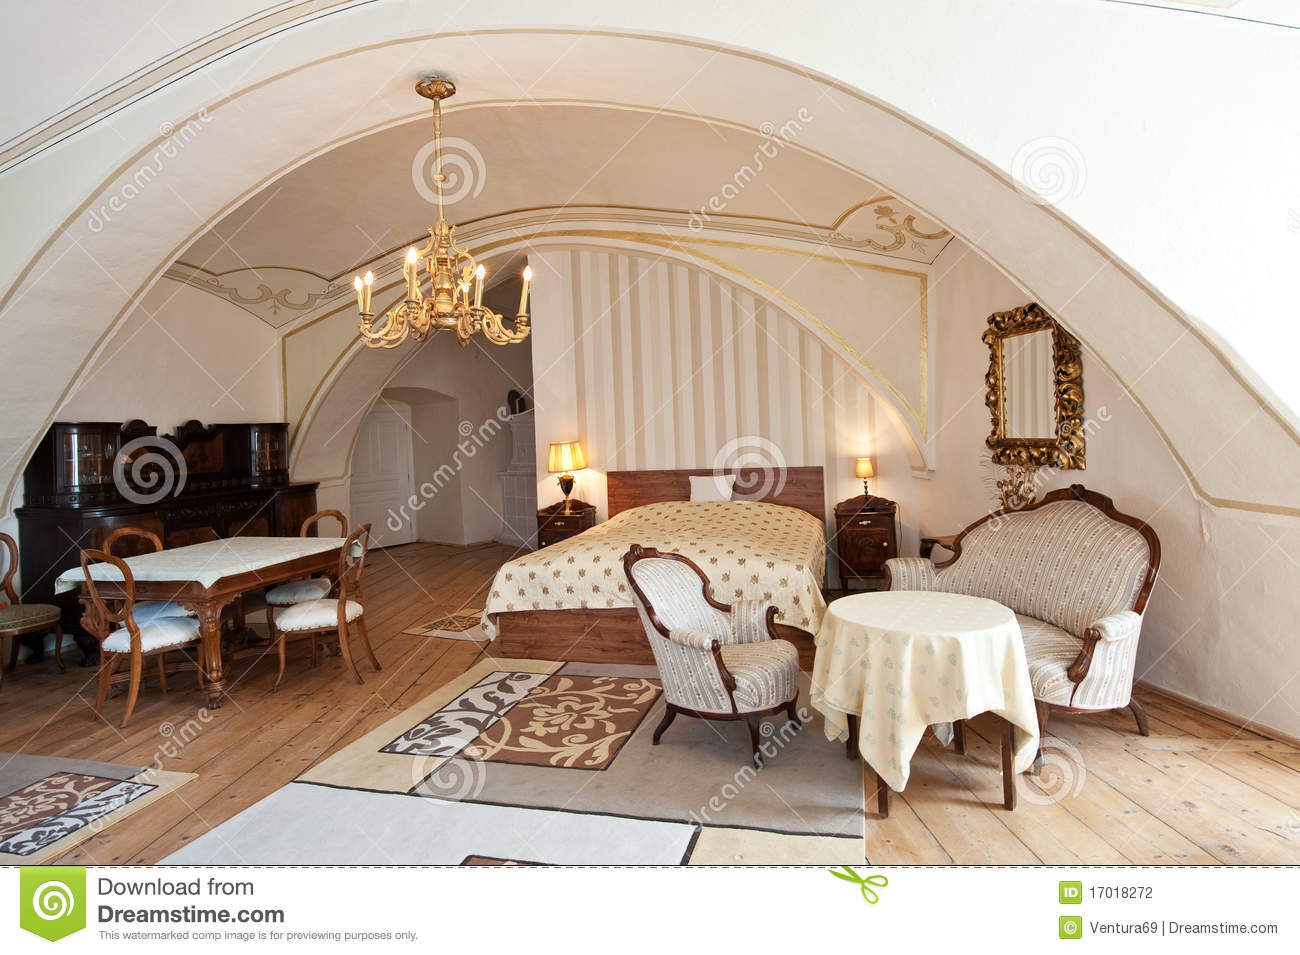 Interior Of Luxury Hotel Room In Vintage Style Stock